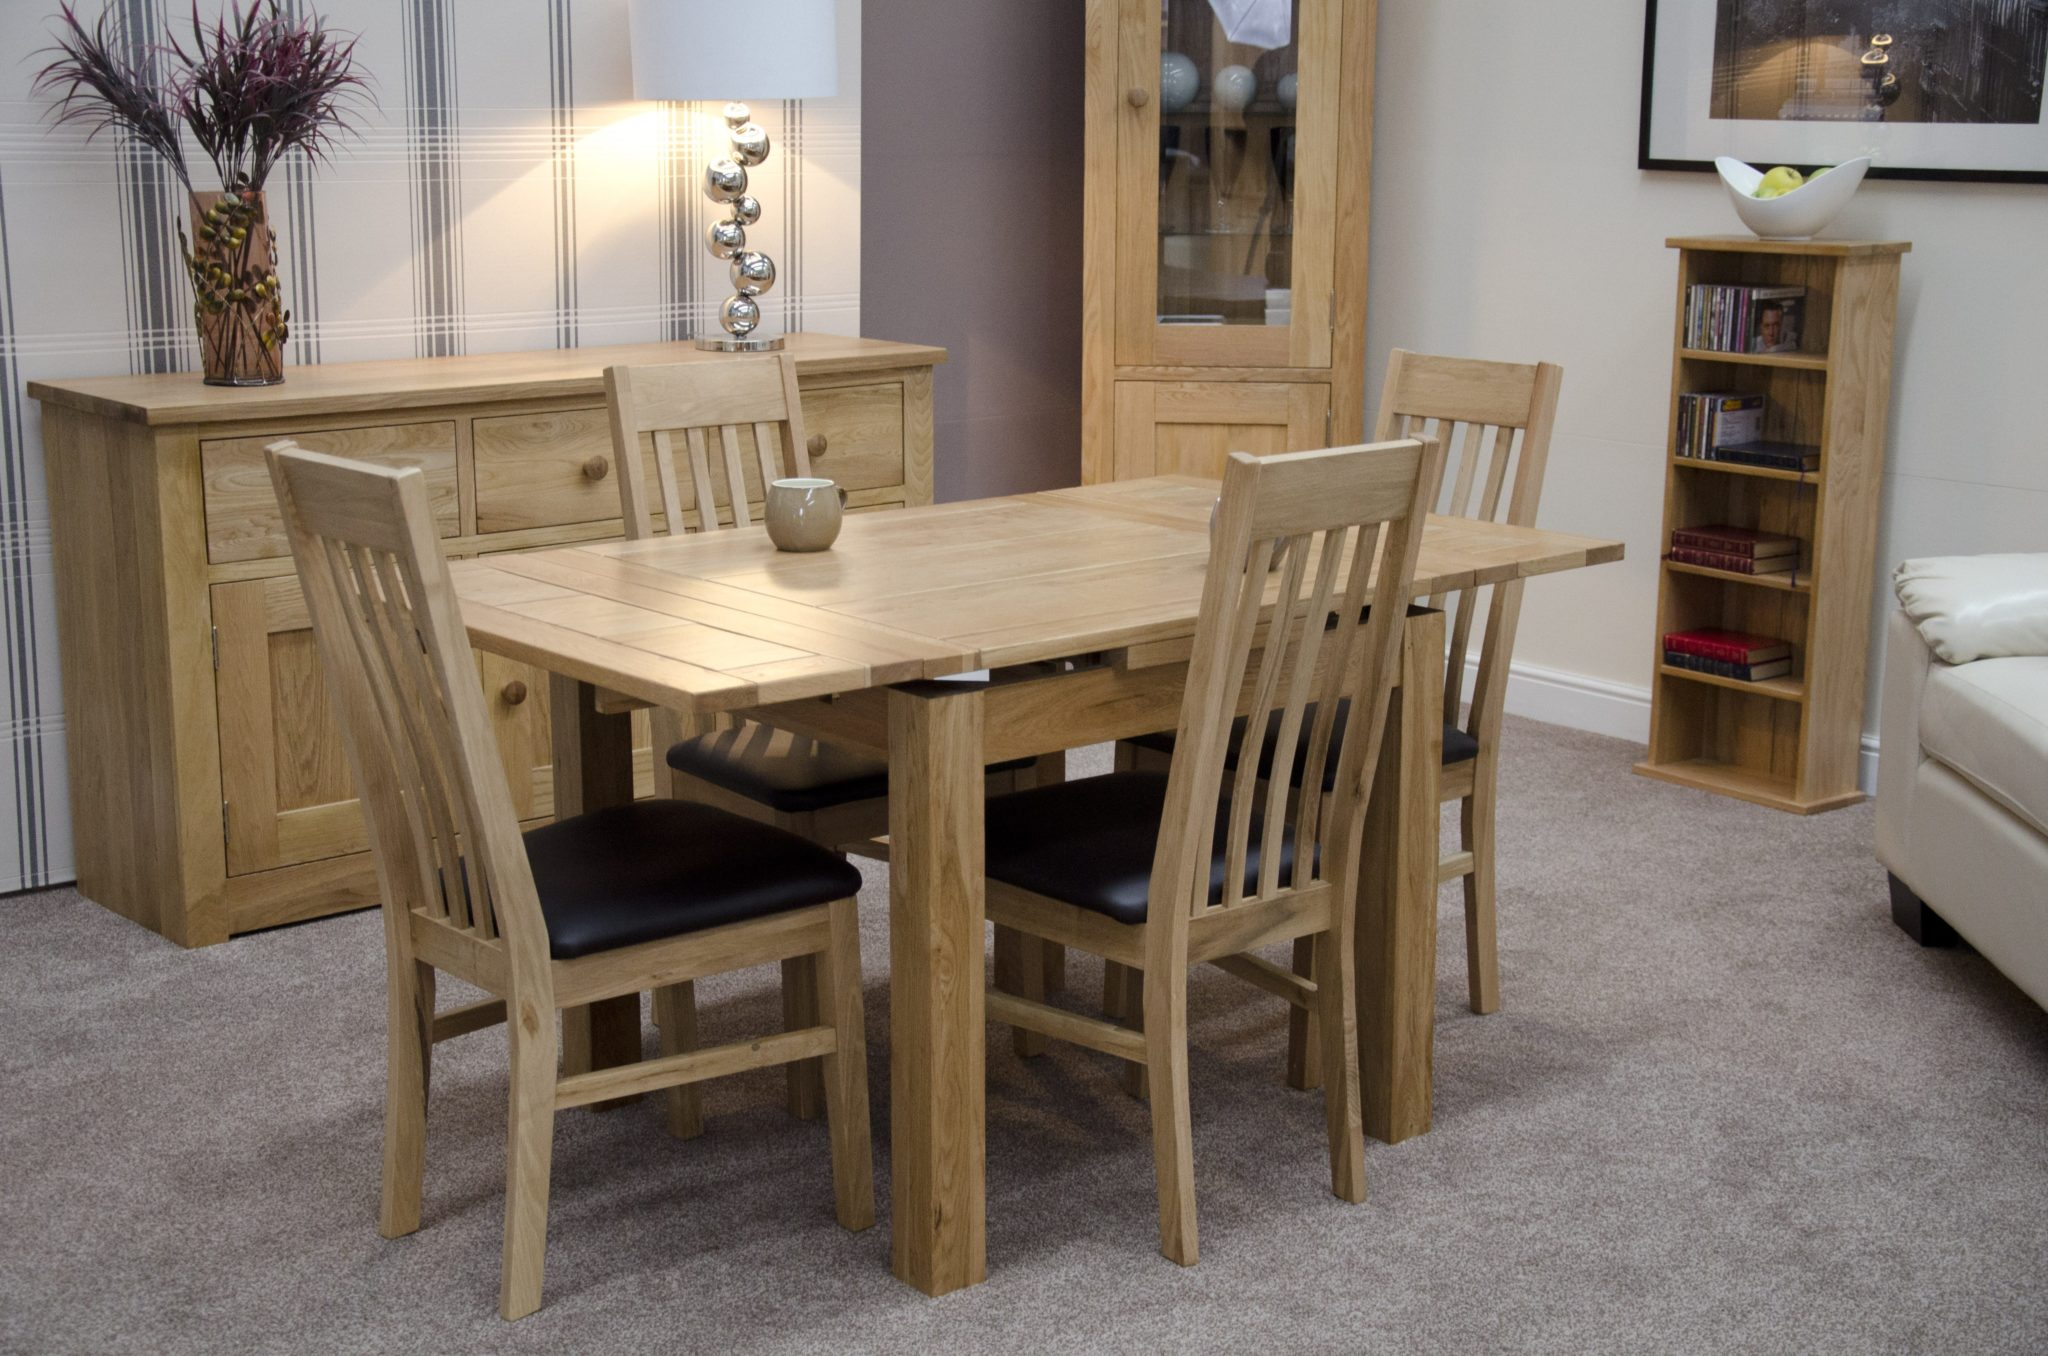 Oak small 3' x 3' drawer leaf dining table